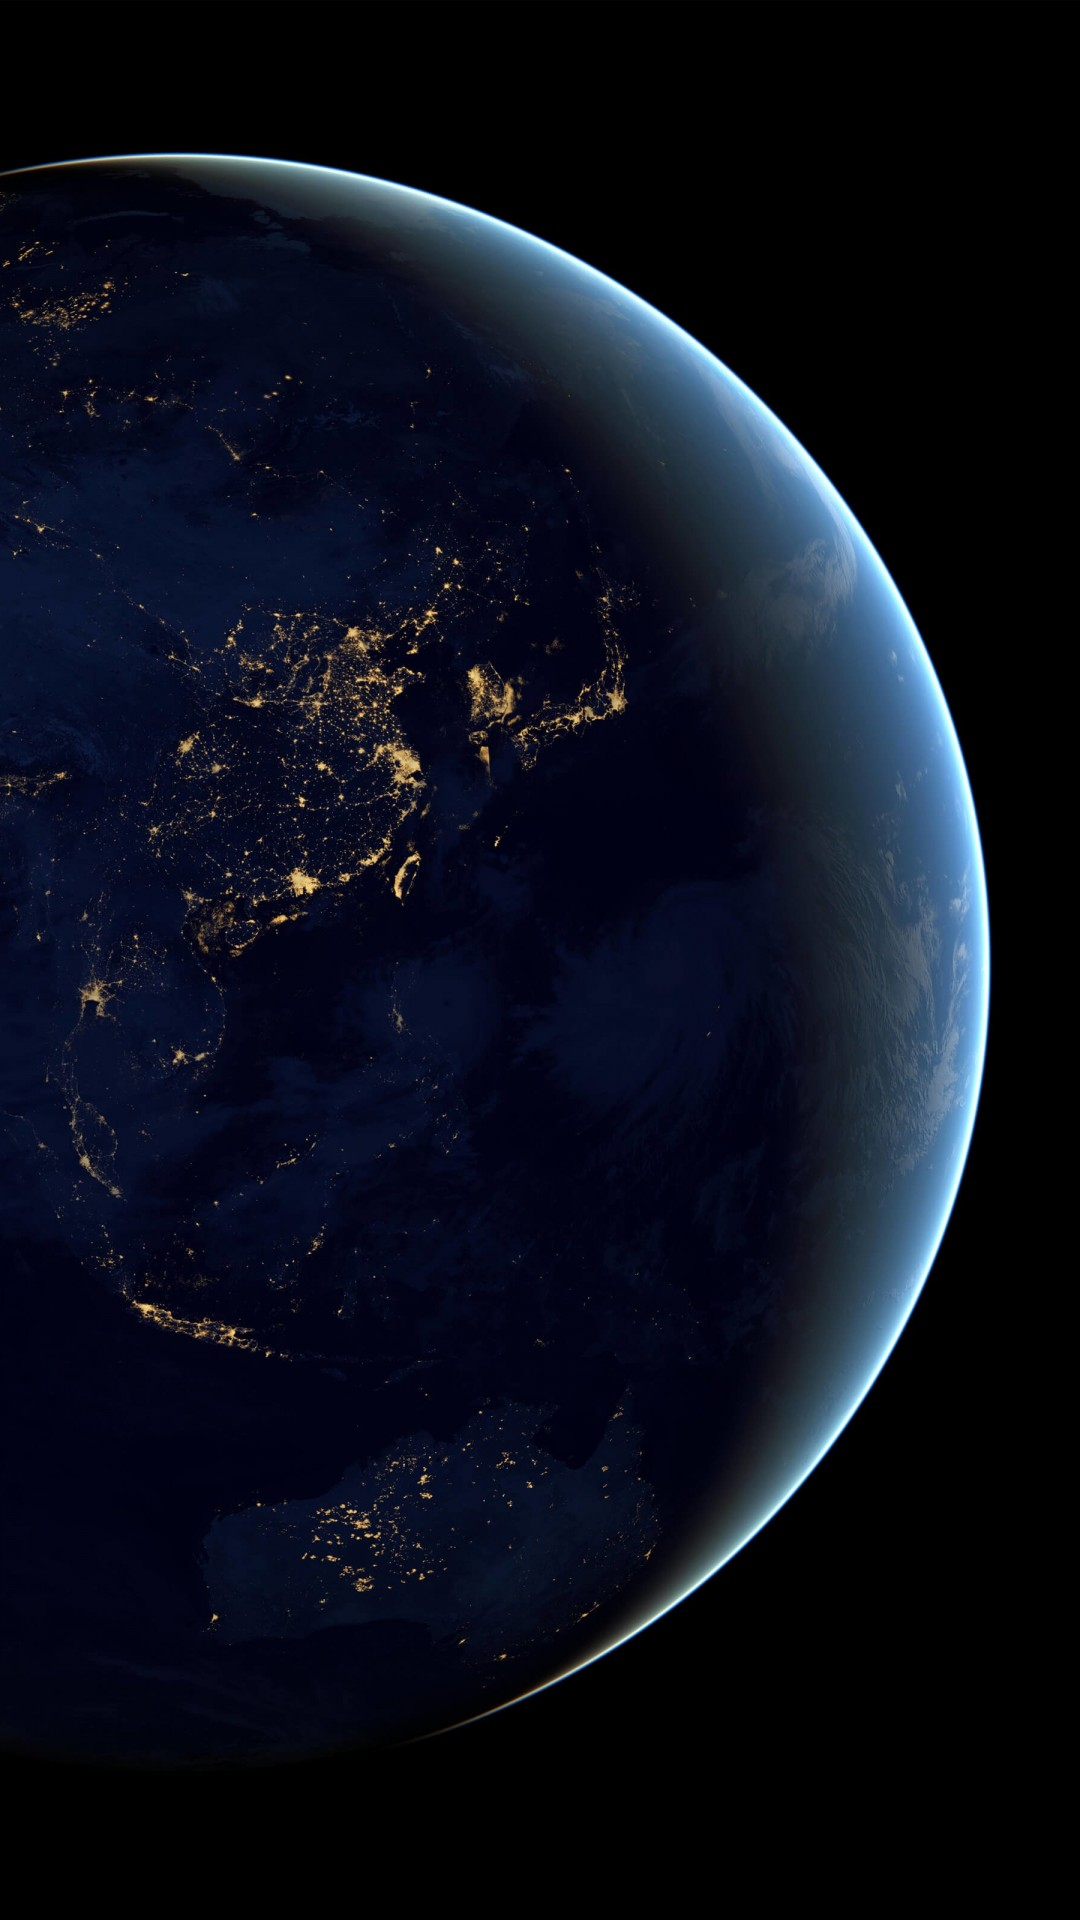 Earth At Night Seen From Space Wallpaper for SAMSUNG Galaxy S4